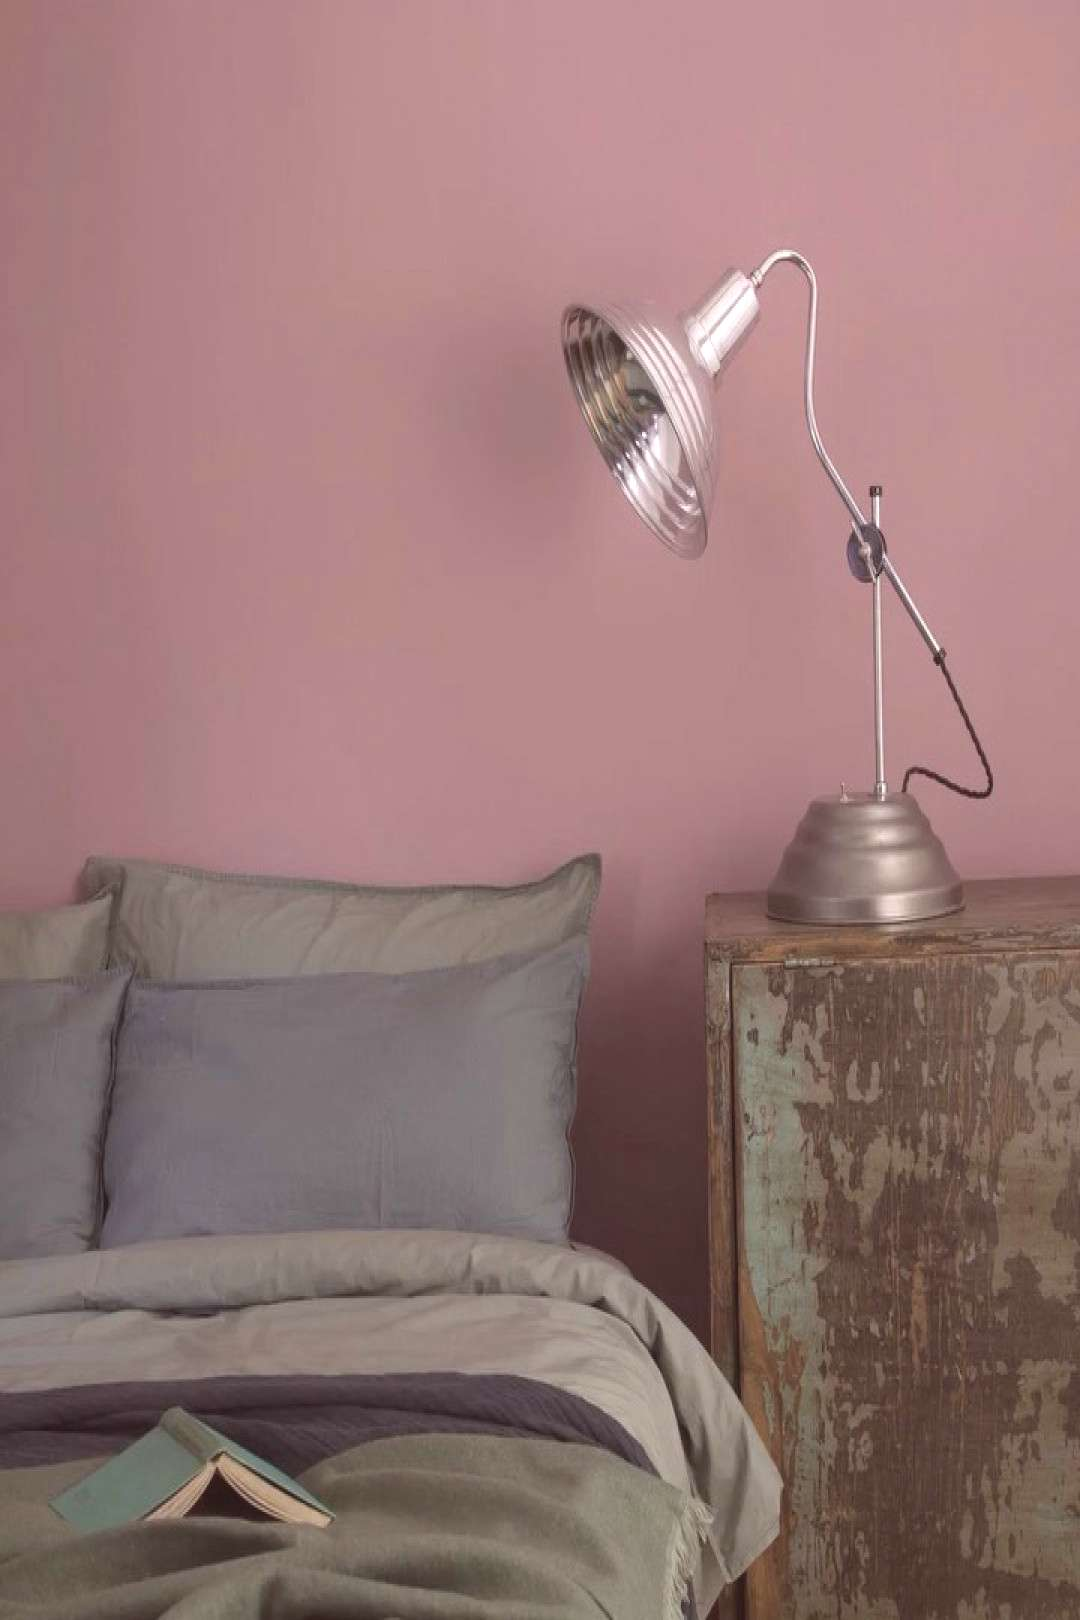 Vintage lights like this restored 1940s medical therapy lamp not